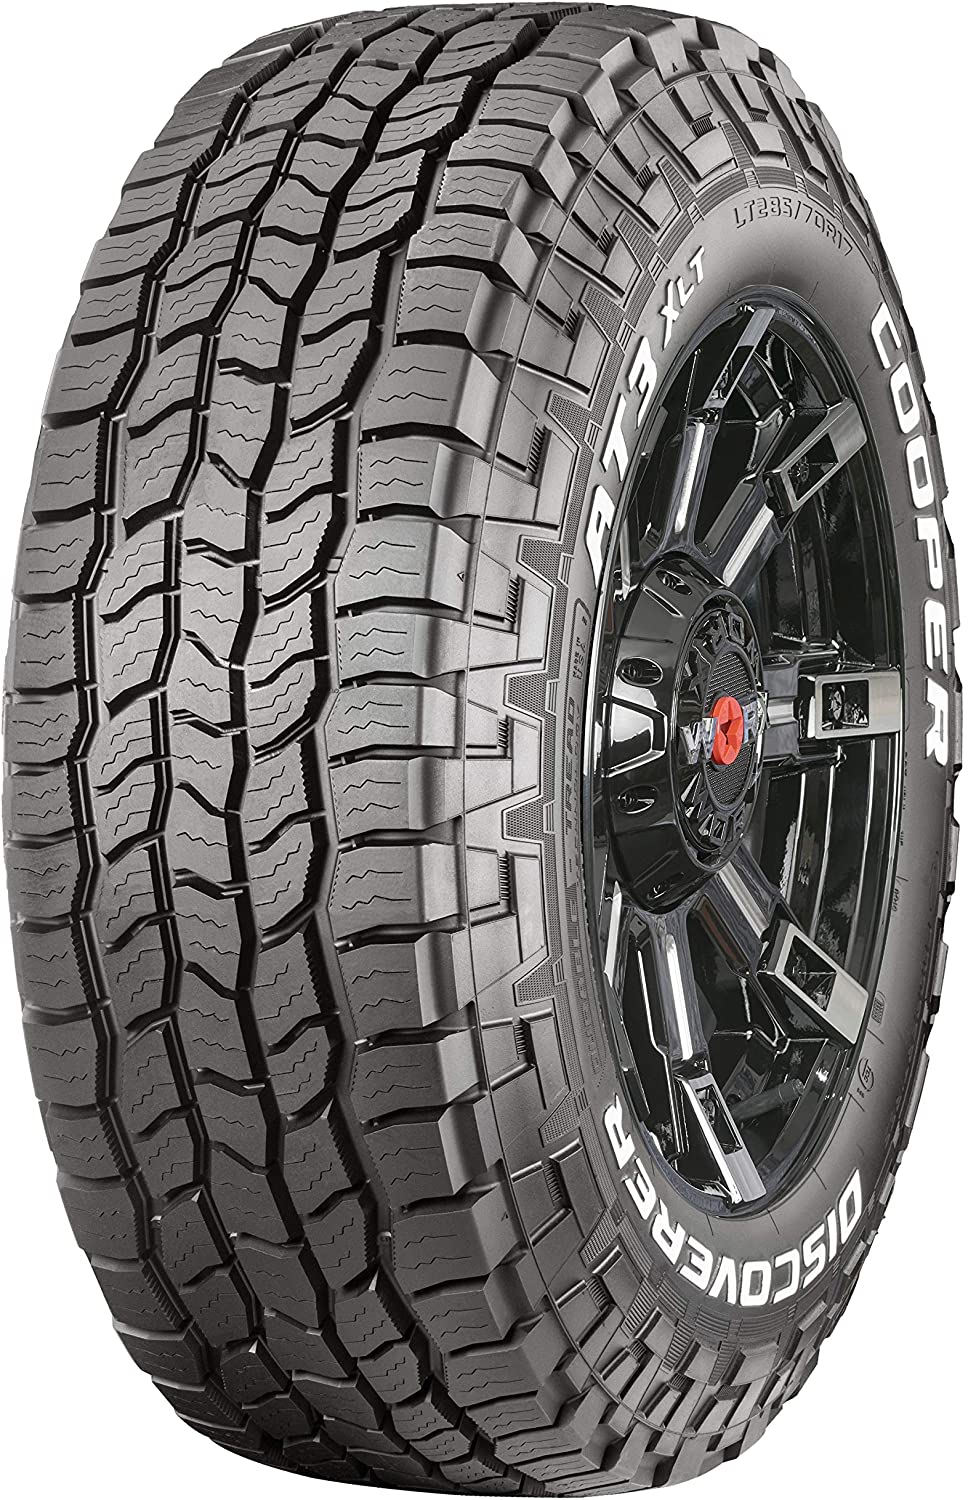 Neumático COOPER DISCOVERER AT3 4S 255/70R18 113 T